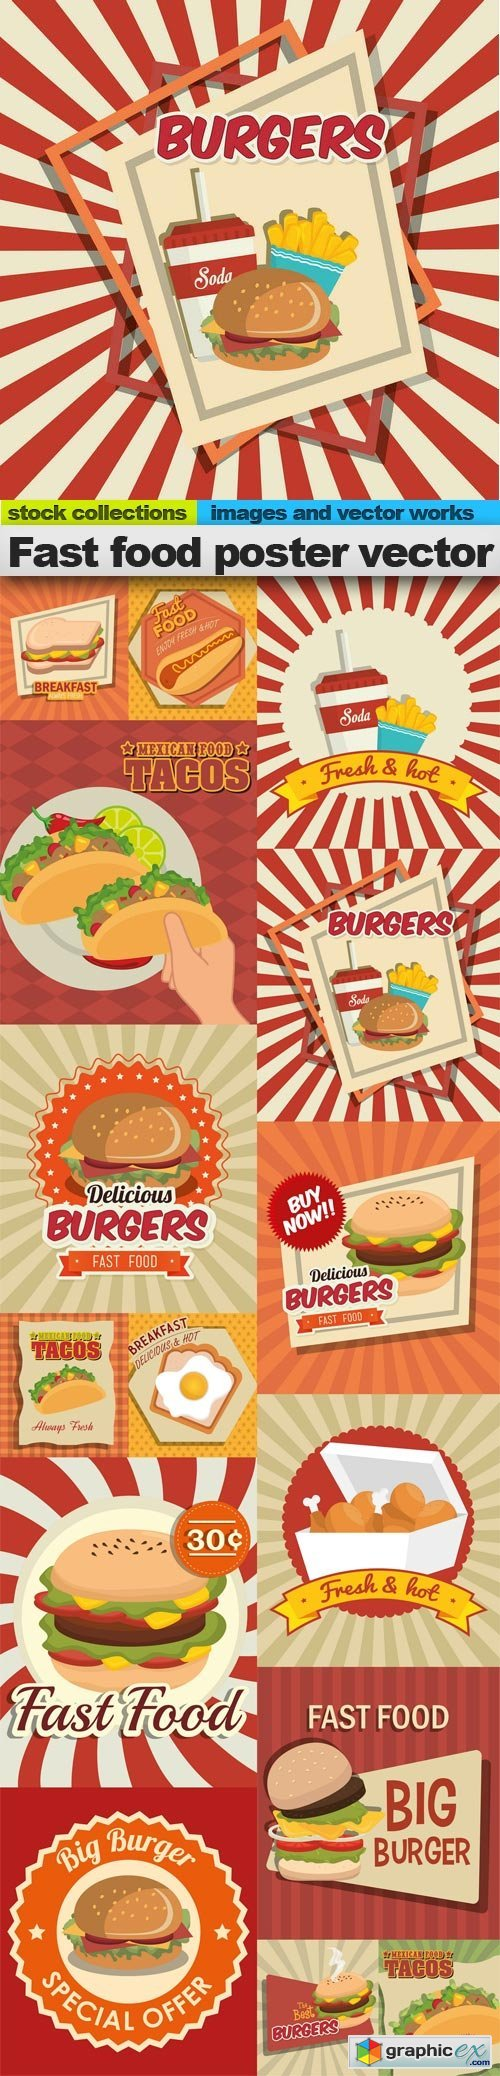 Fast food poster vector, 15 x EPS